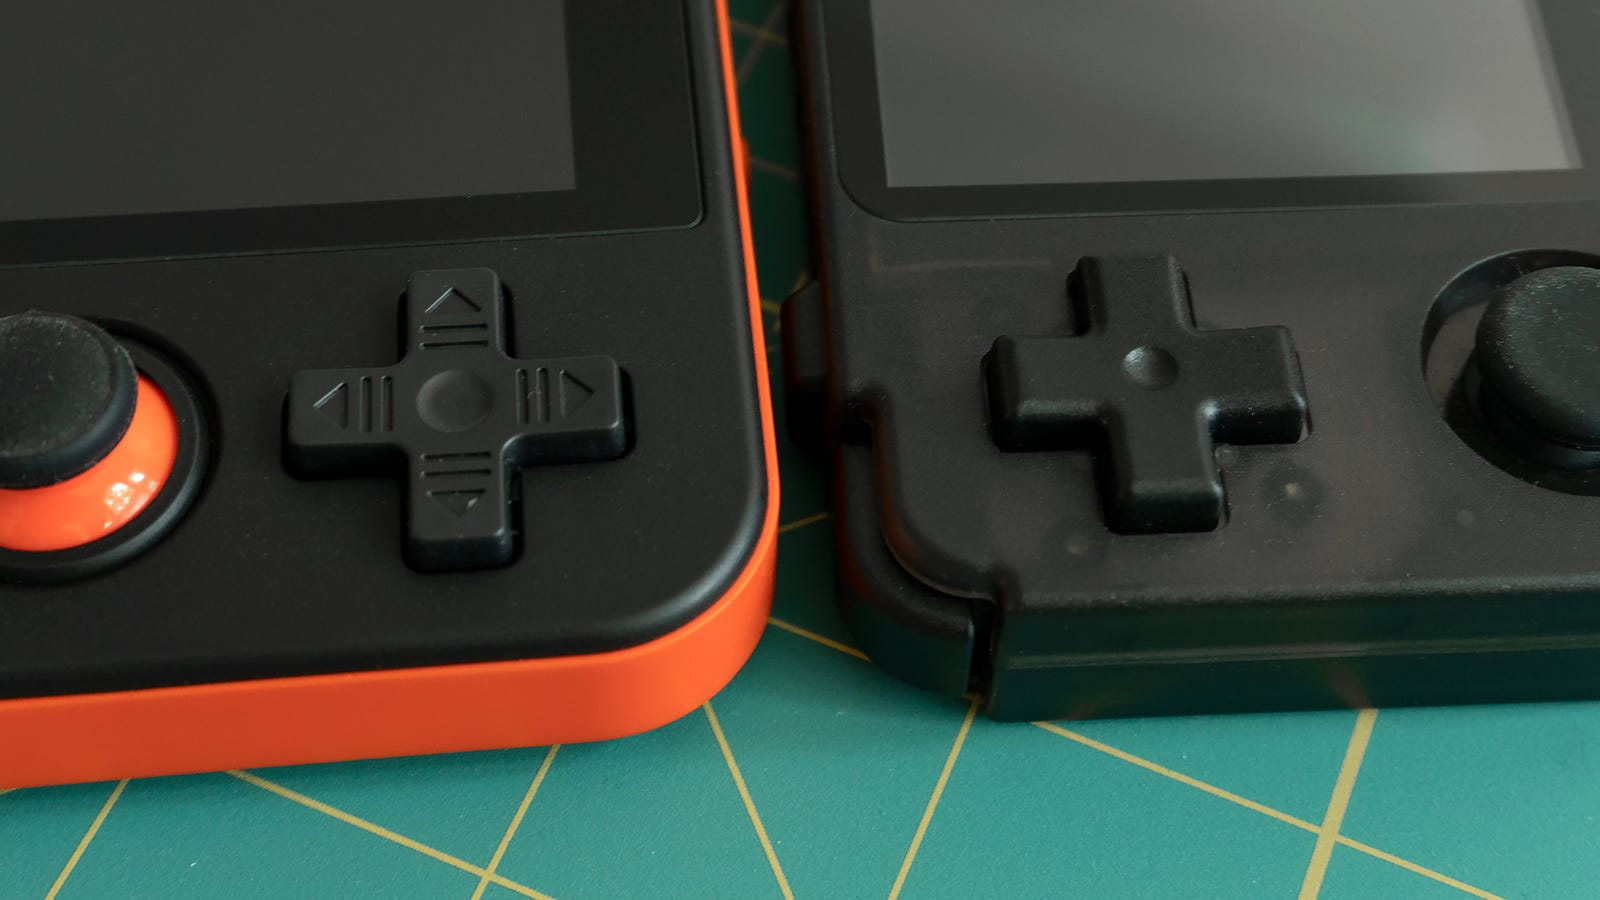 The four-way directional D-pad on the RK2020 (right) is smaller than the RG350's (left) but feels better under thumb.